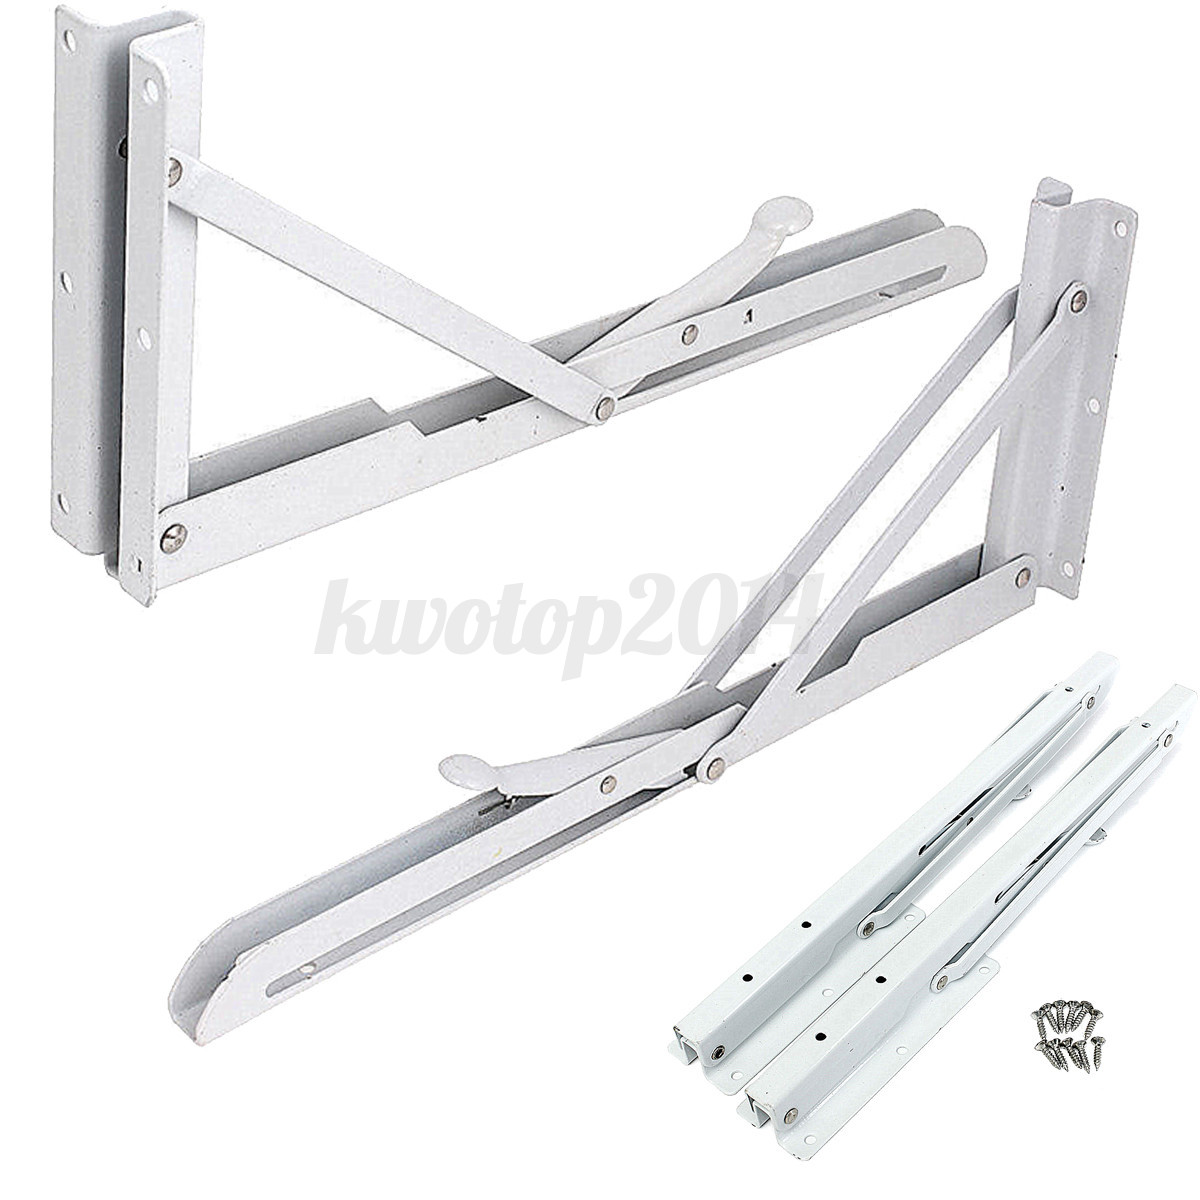 chair steel bracket old wooden 2pcs stainless folding shelf bench table